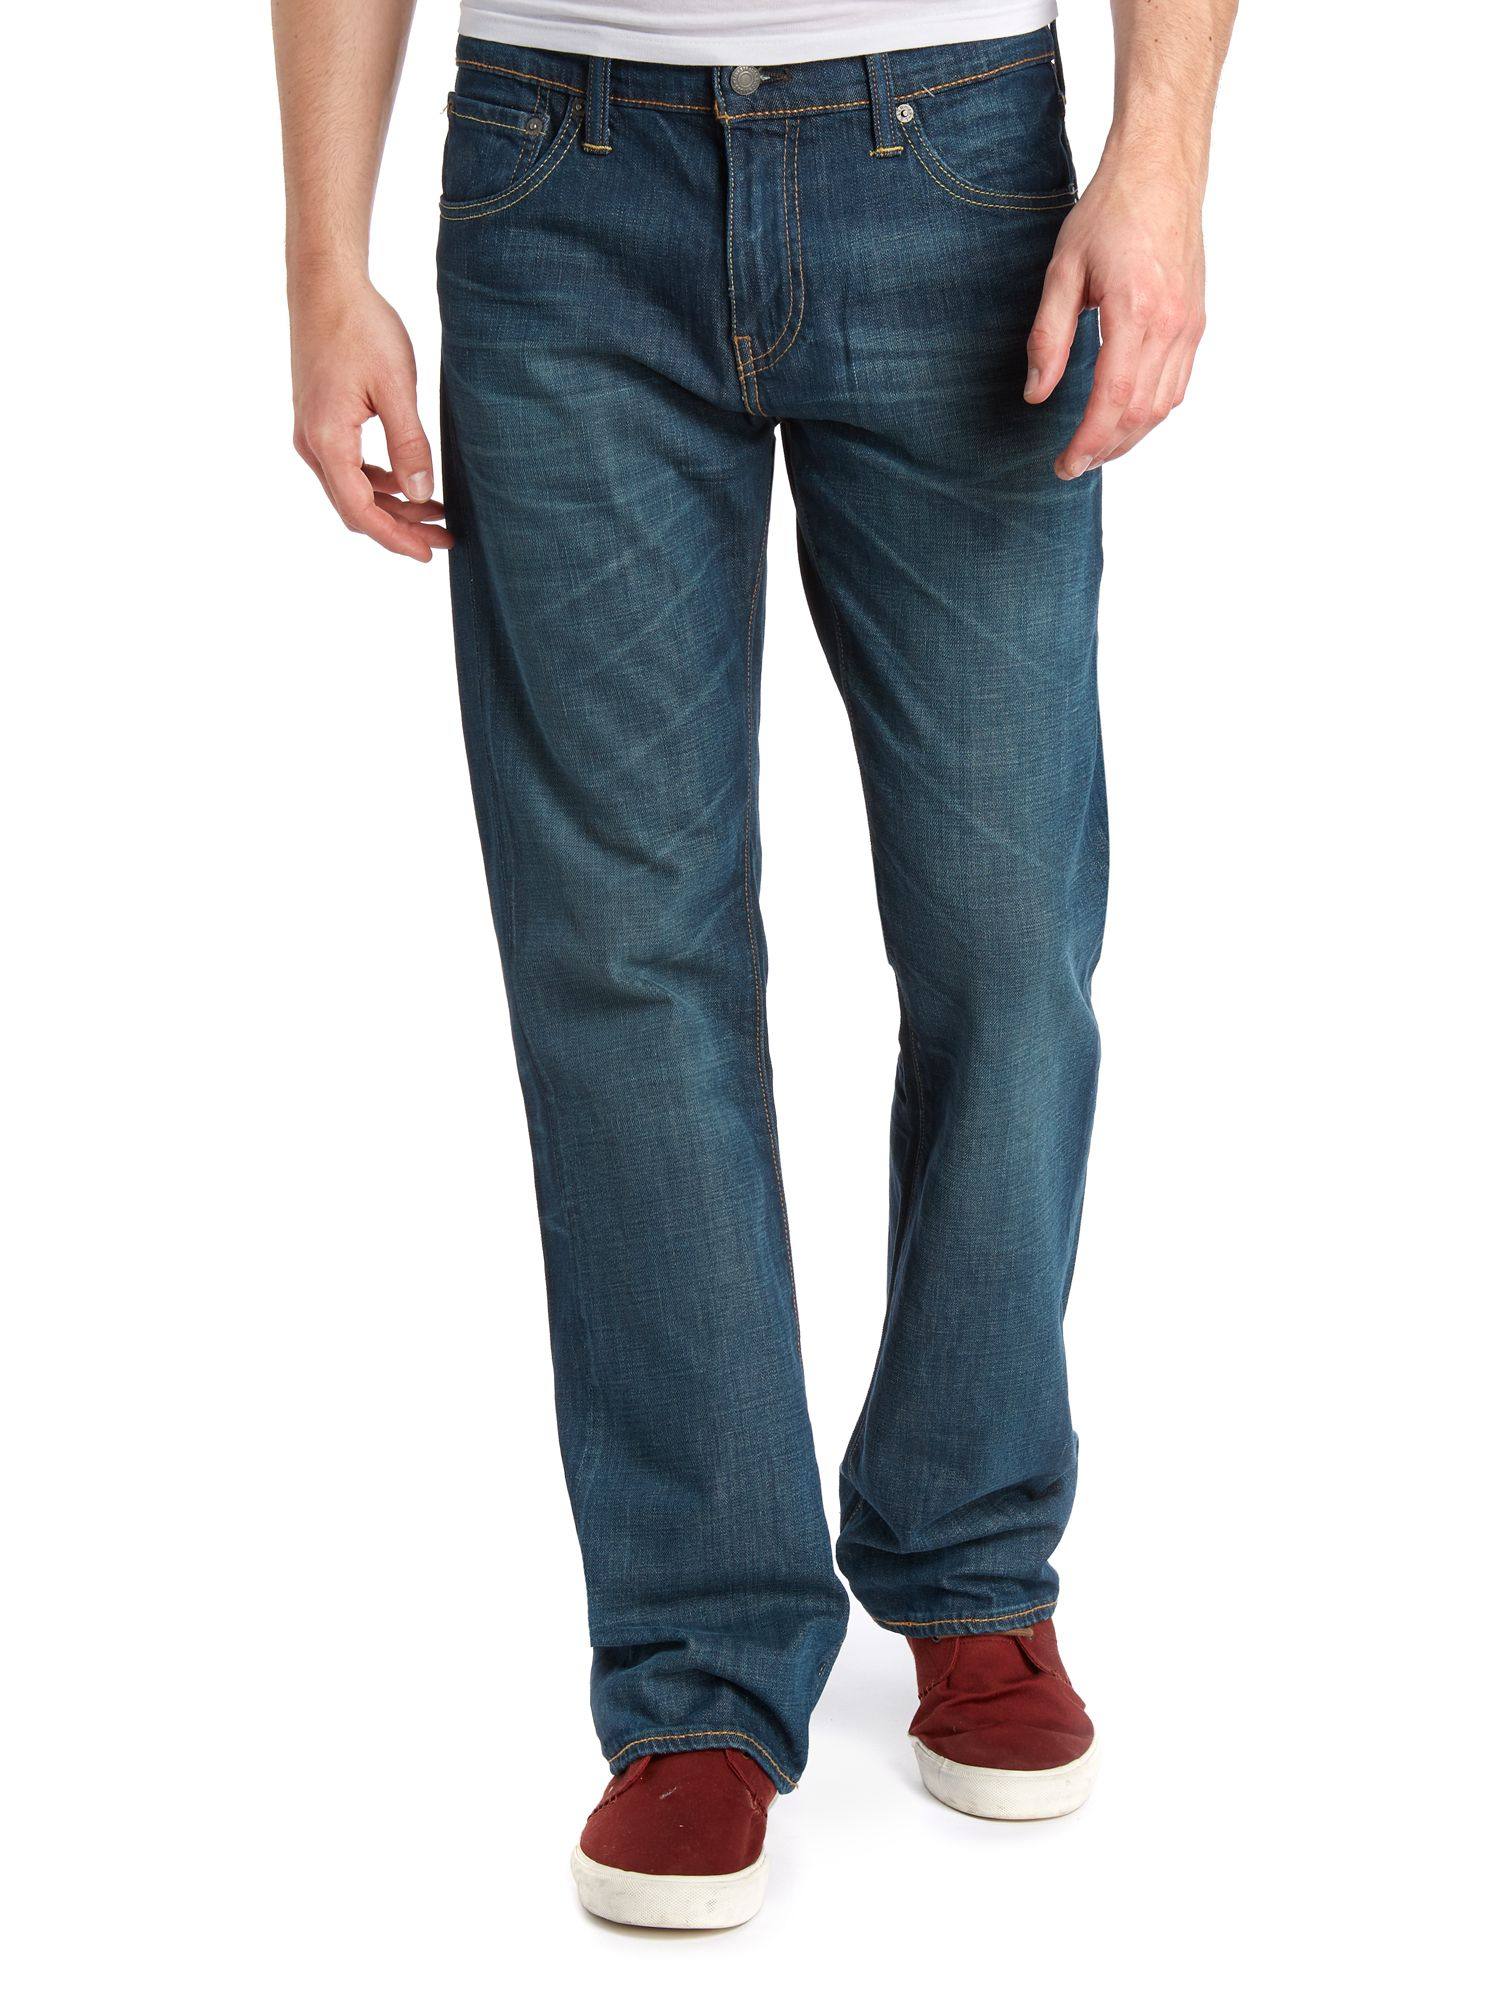 527 explorer mid wash boot cut jeans